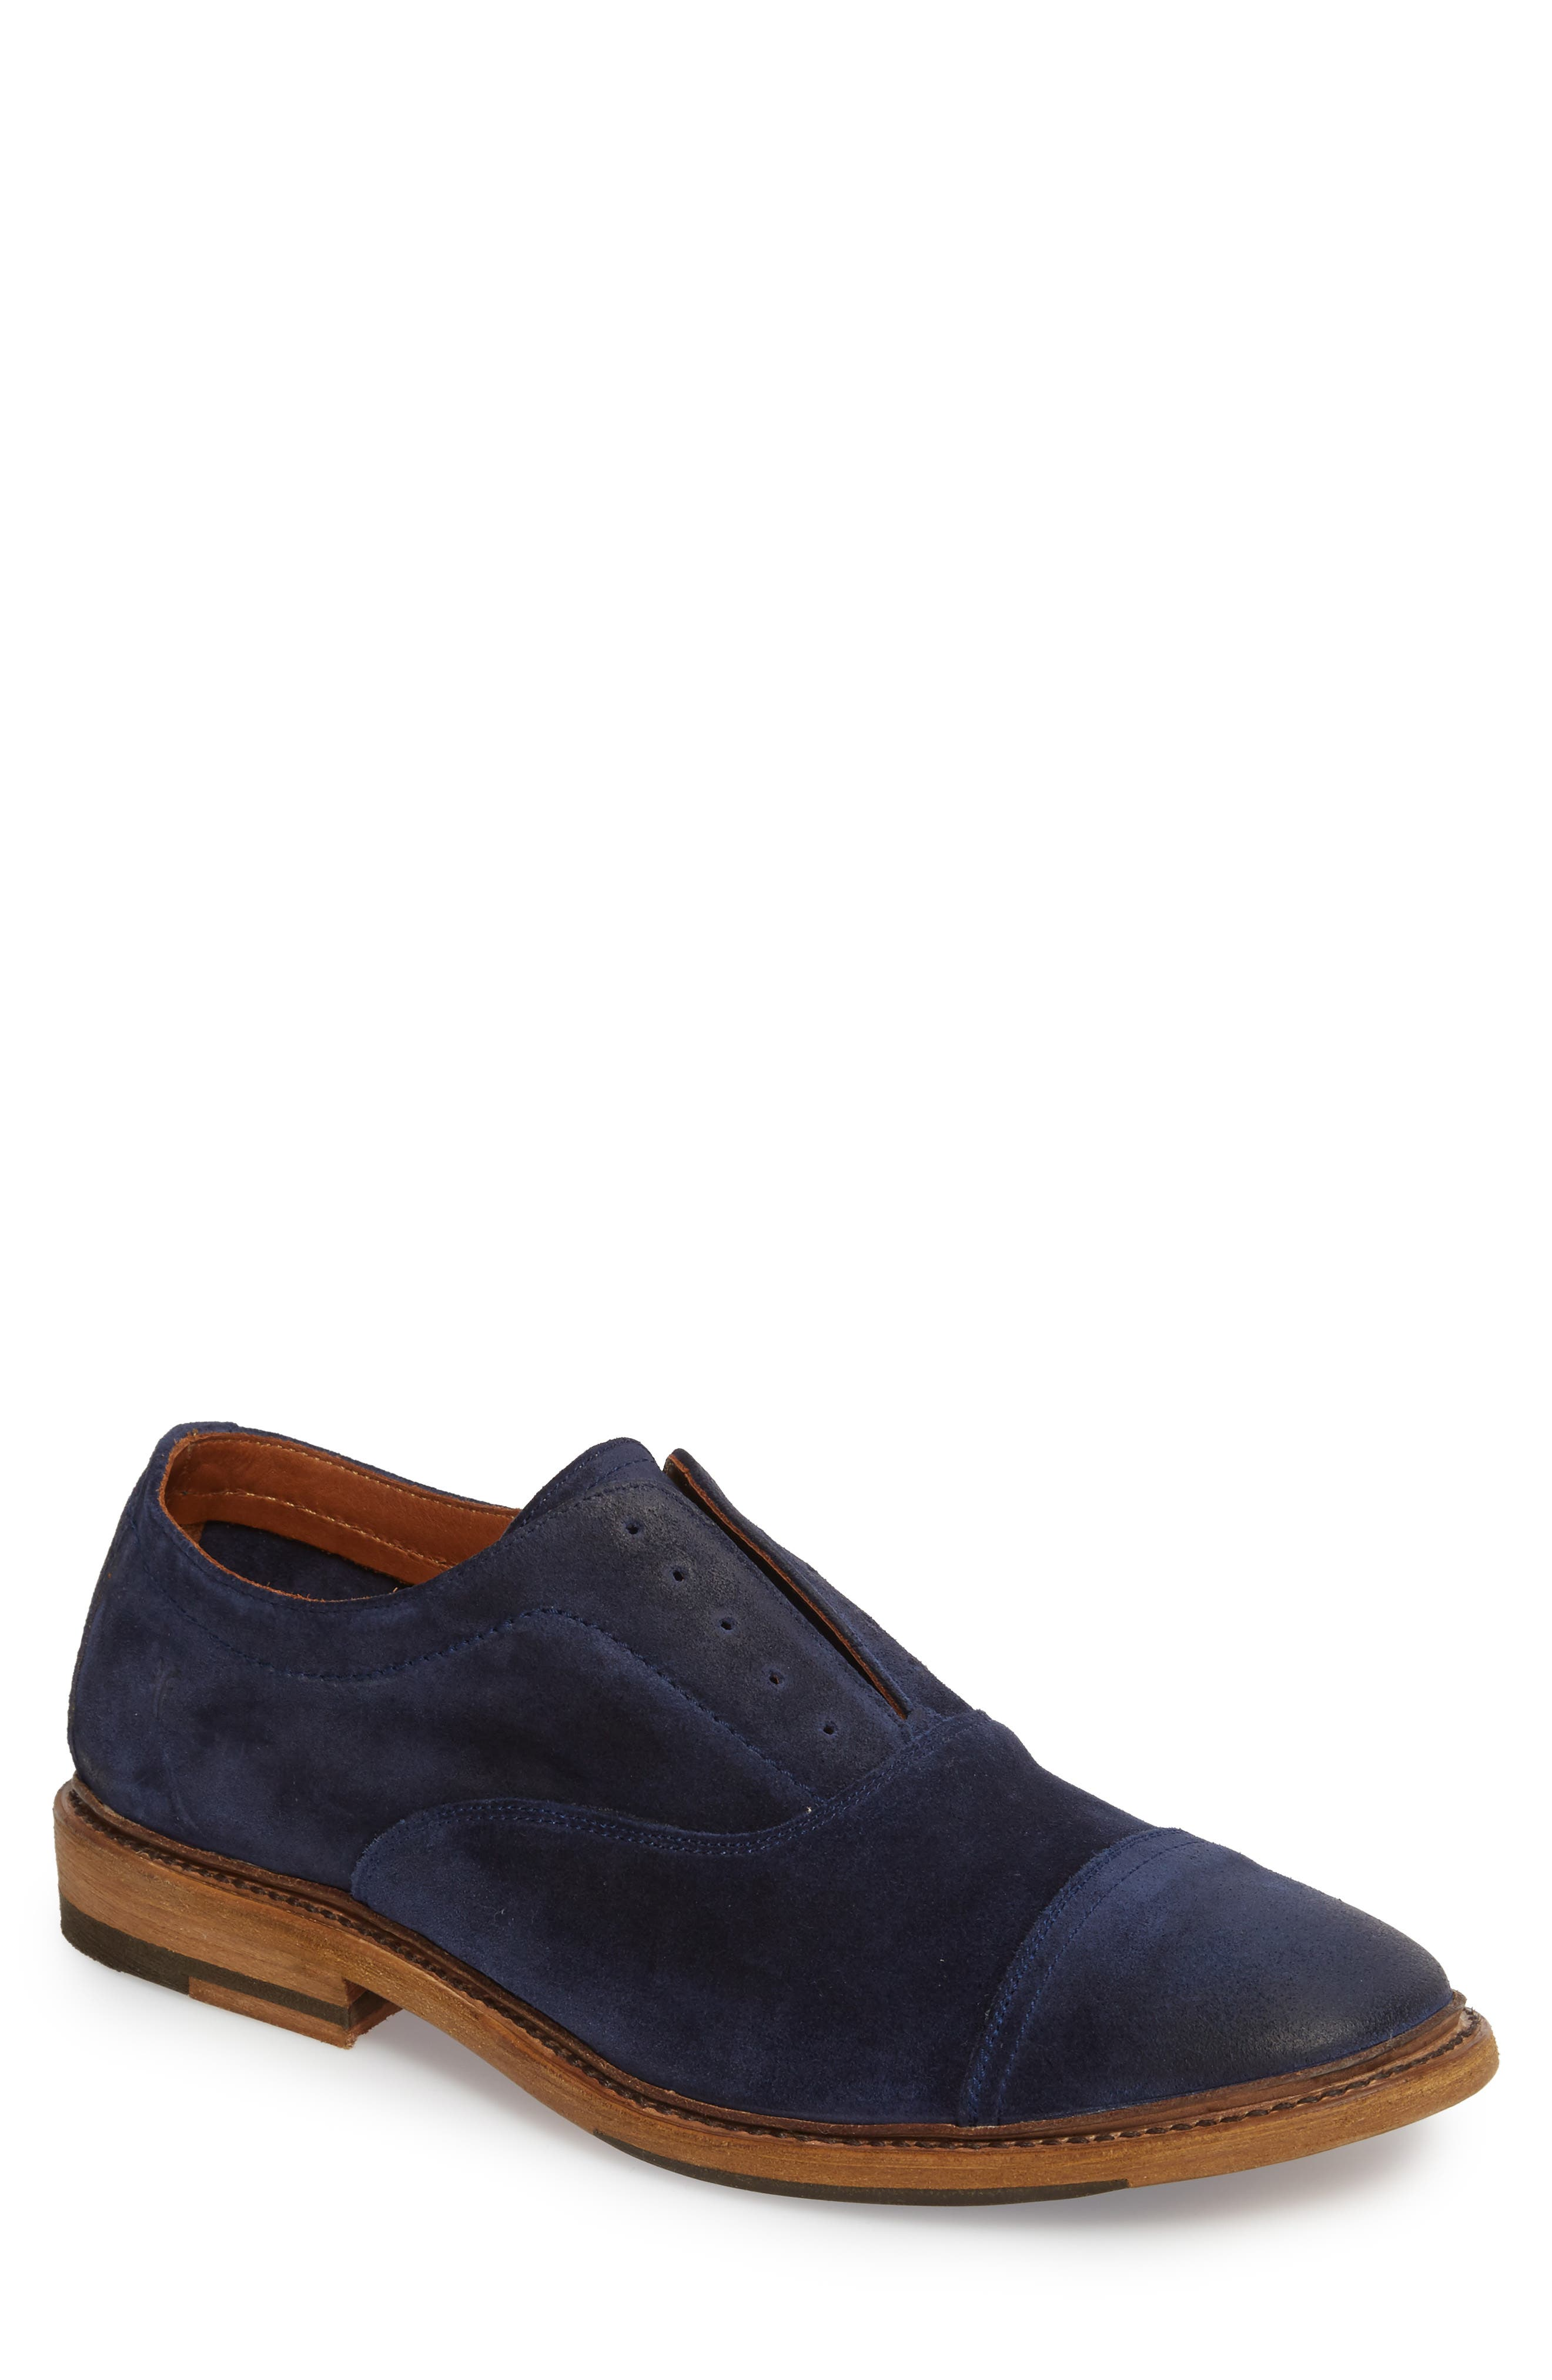 Paul Bal Cap Toe Oxford,                             Main thumbnail 3, color,